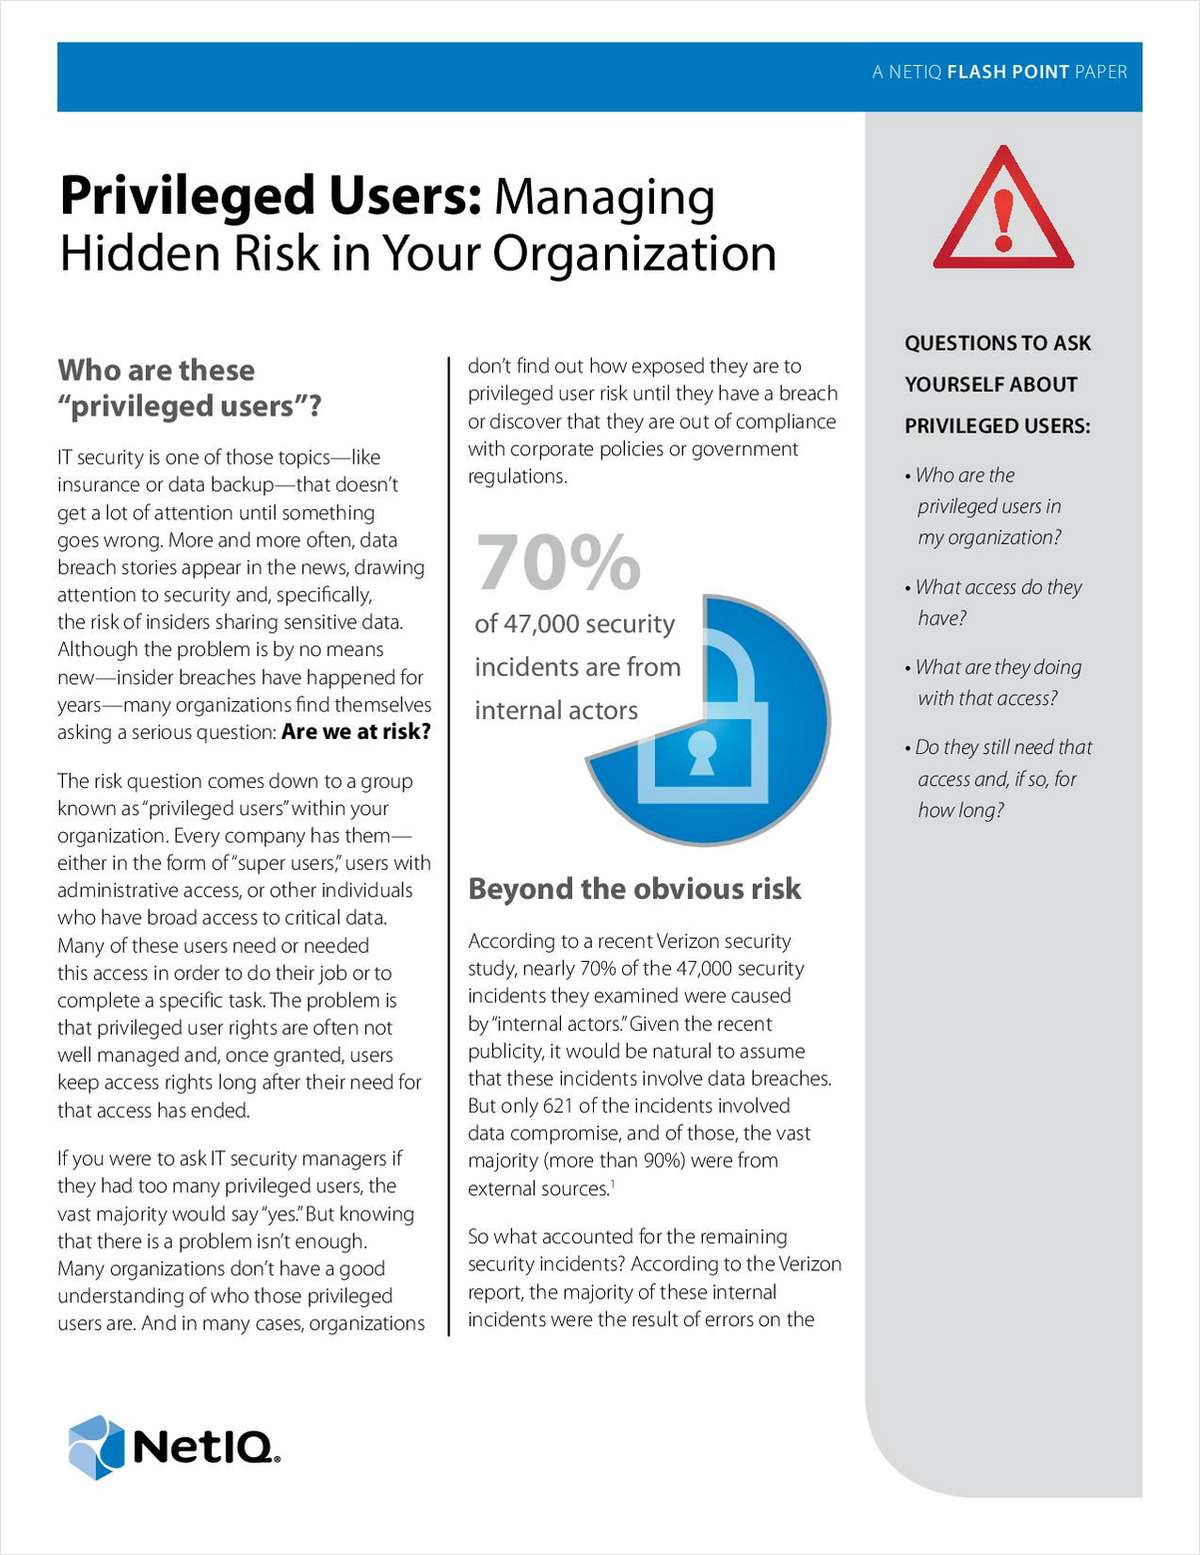 Privileged Users: Managing Hidden Risk in Your Organization